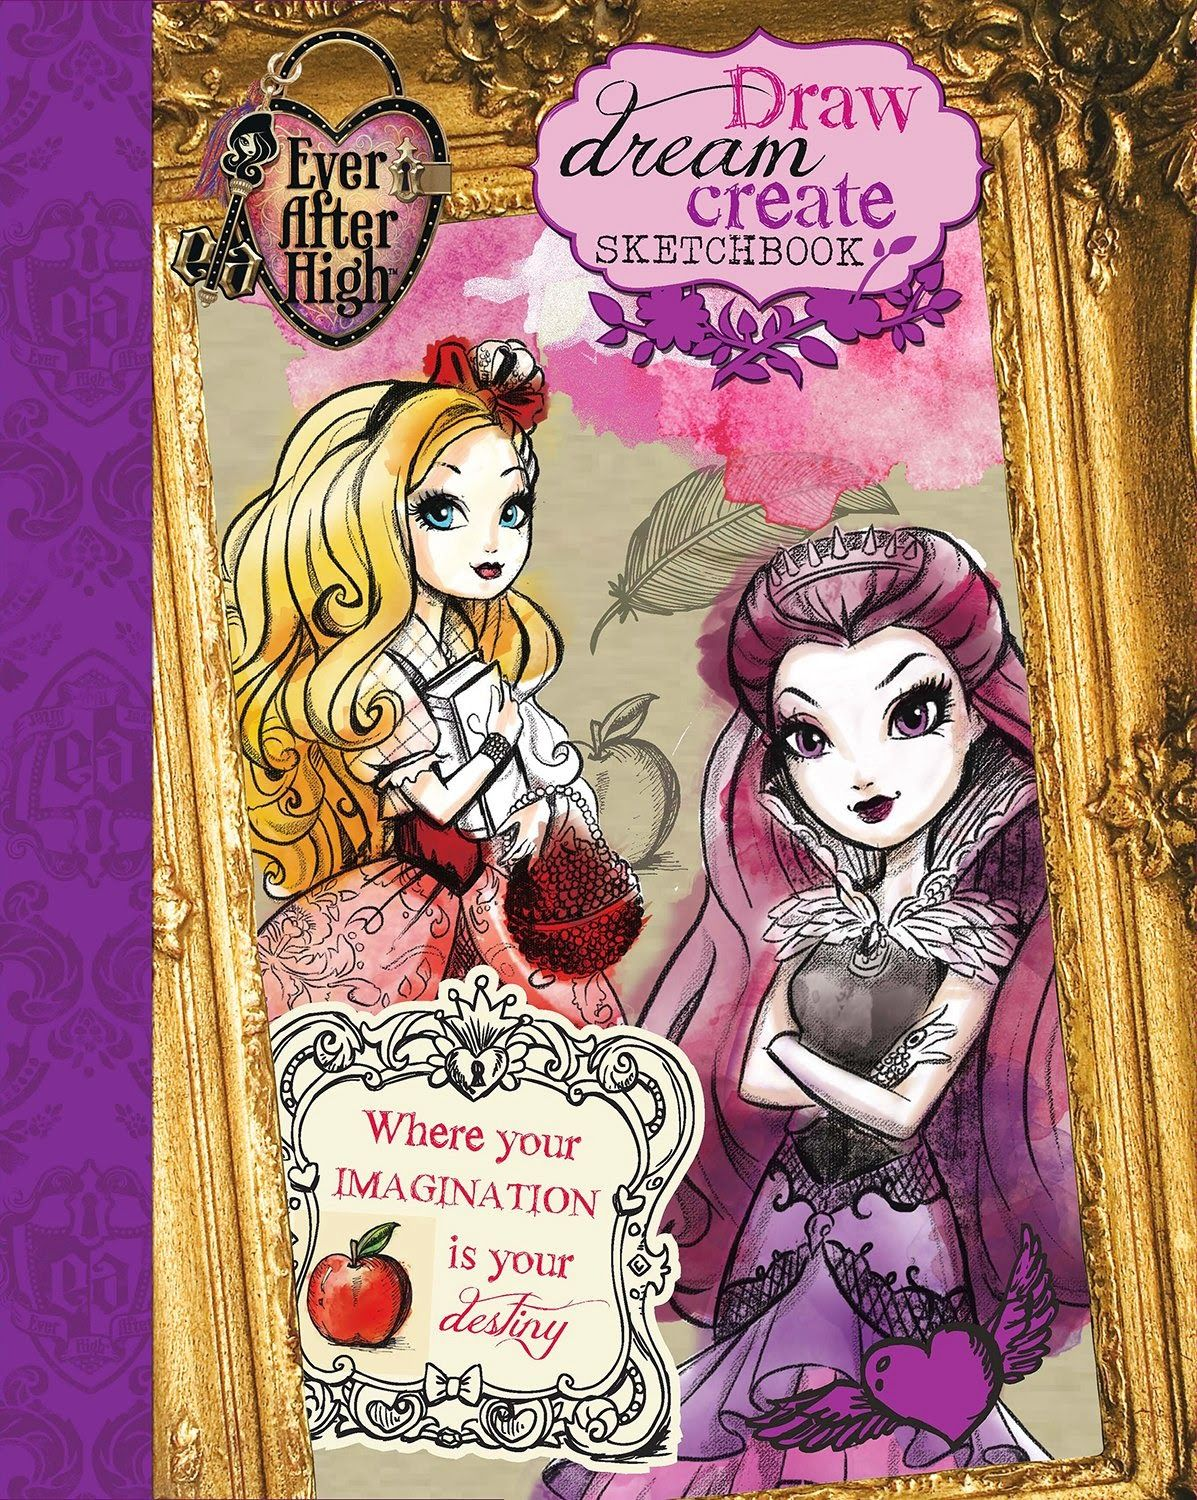 Monster High Libros Ever After High Pretty Nuevo Libro Sketchbook De Ever